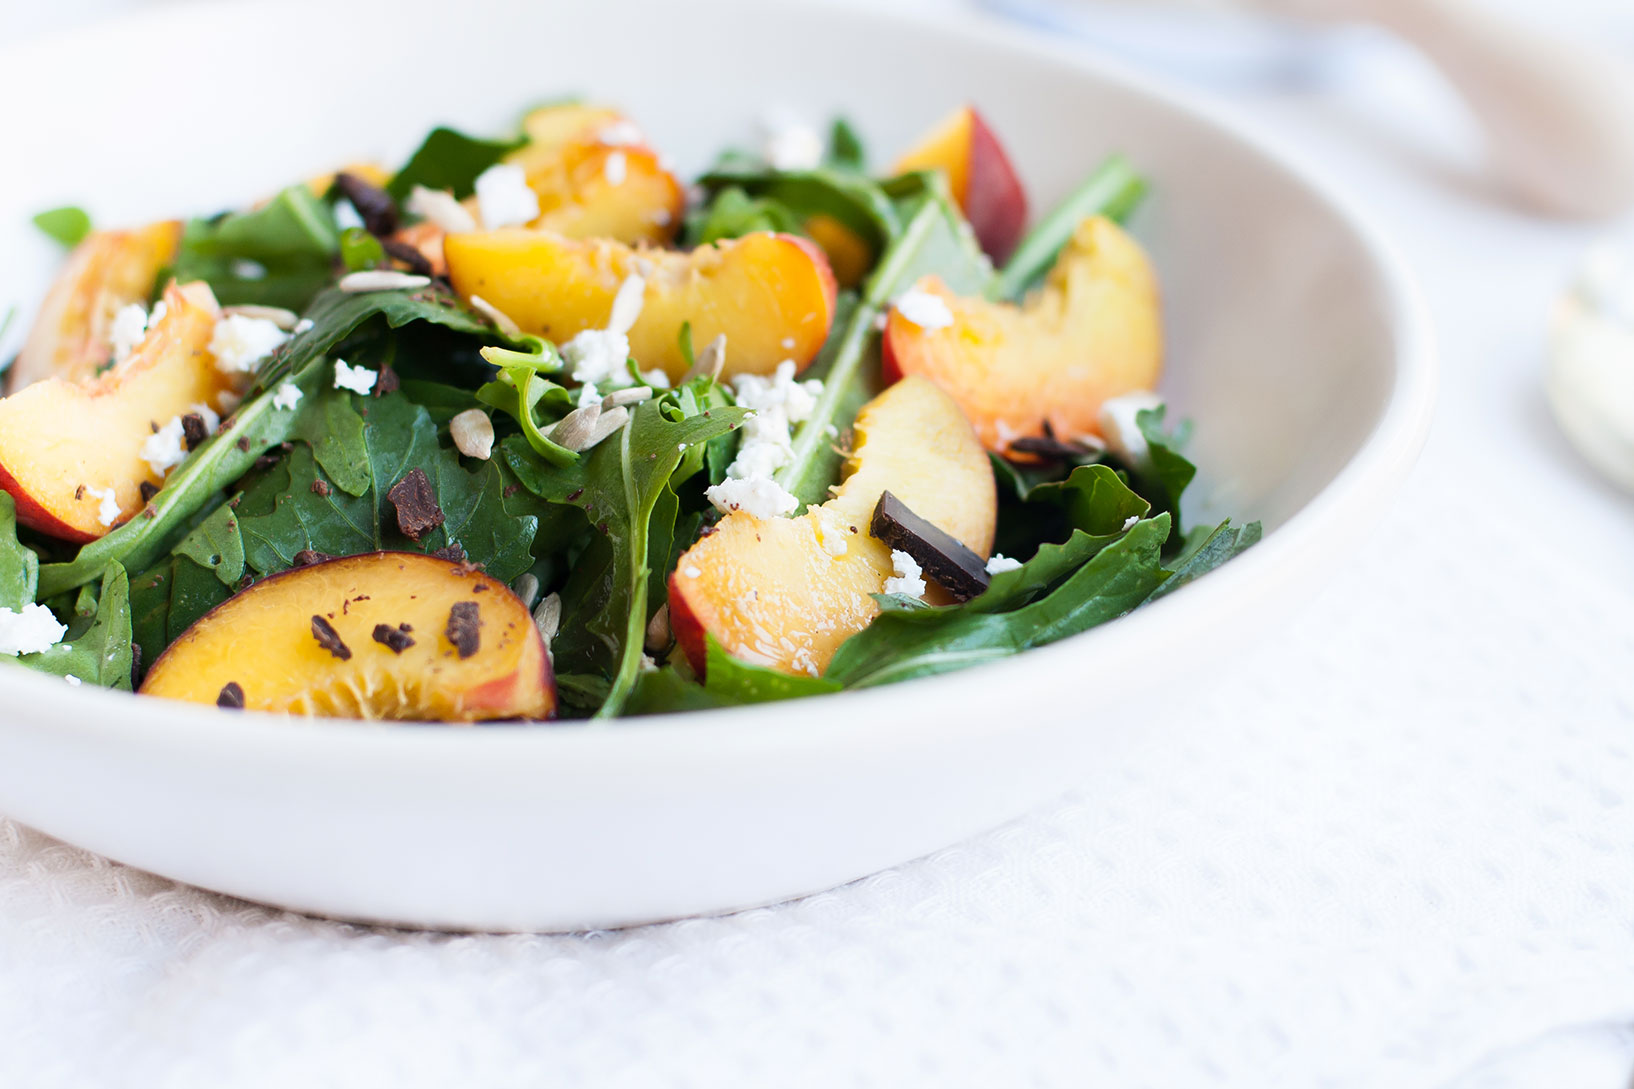 Festive Summer Salad | The Alimental Sage